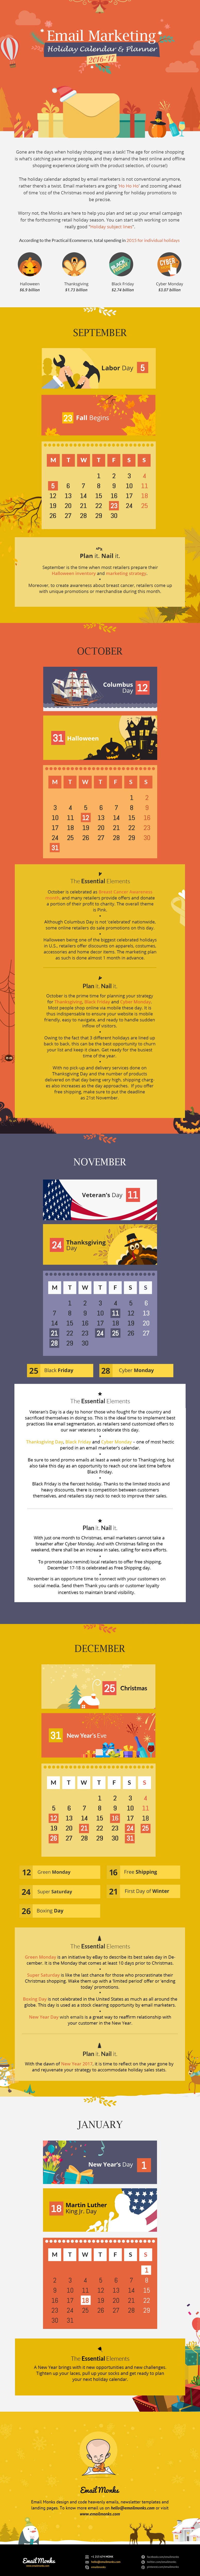 email-marketing-holiday-calendar-infographic